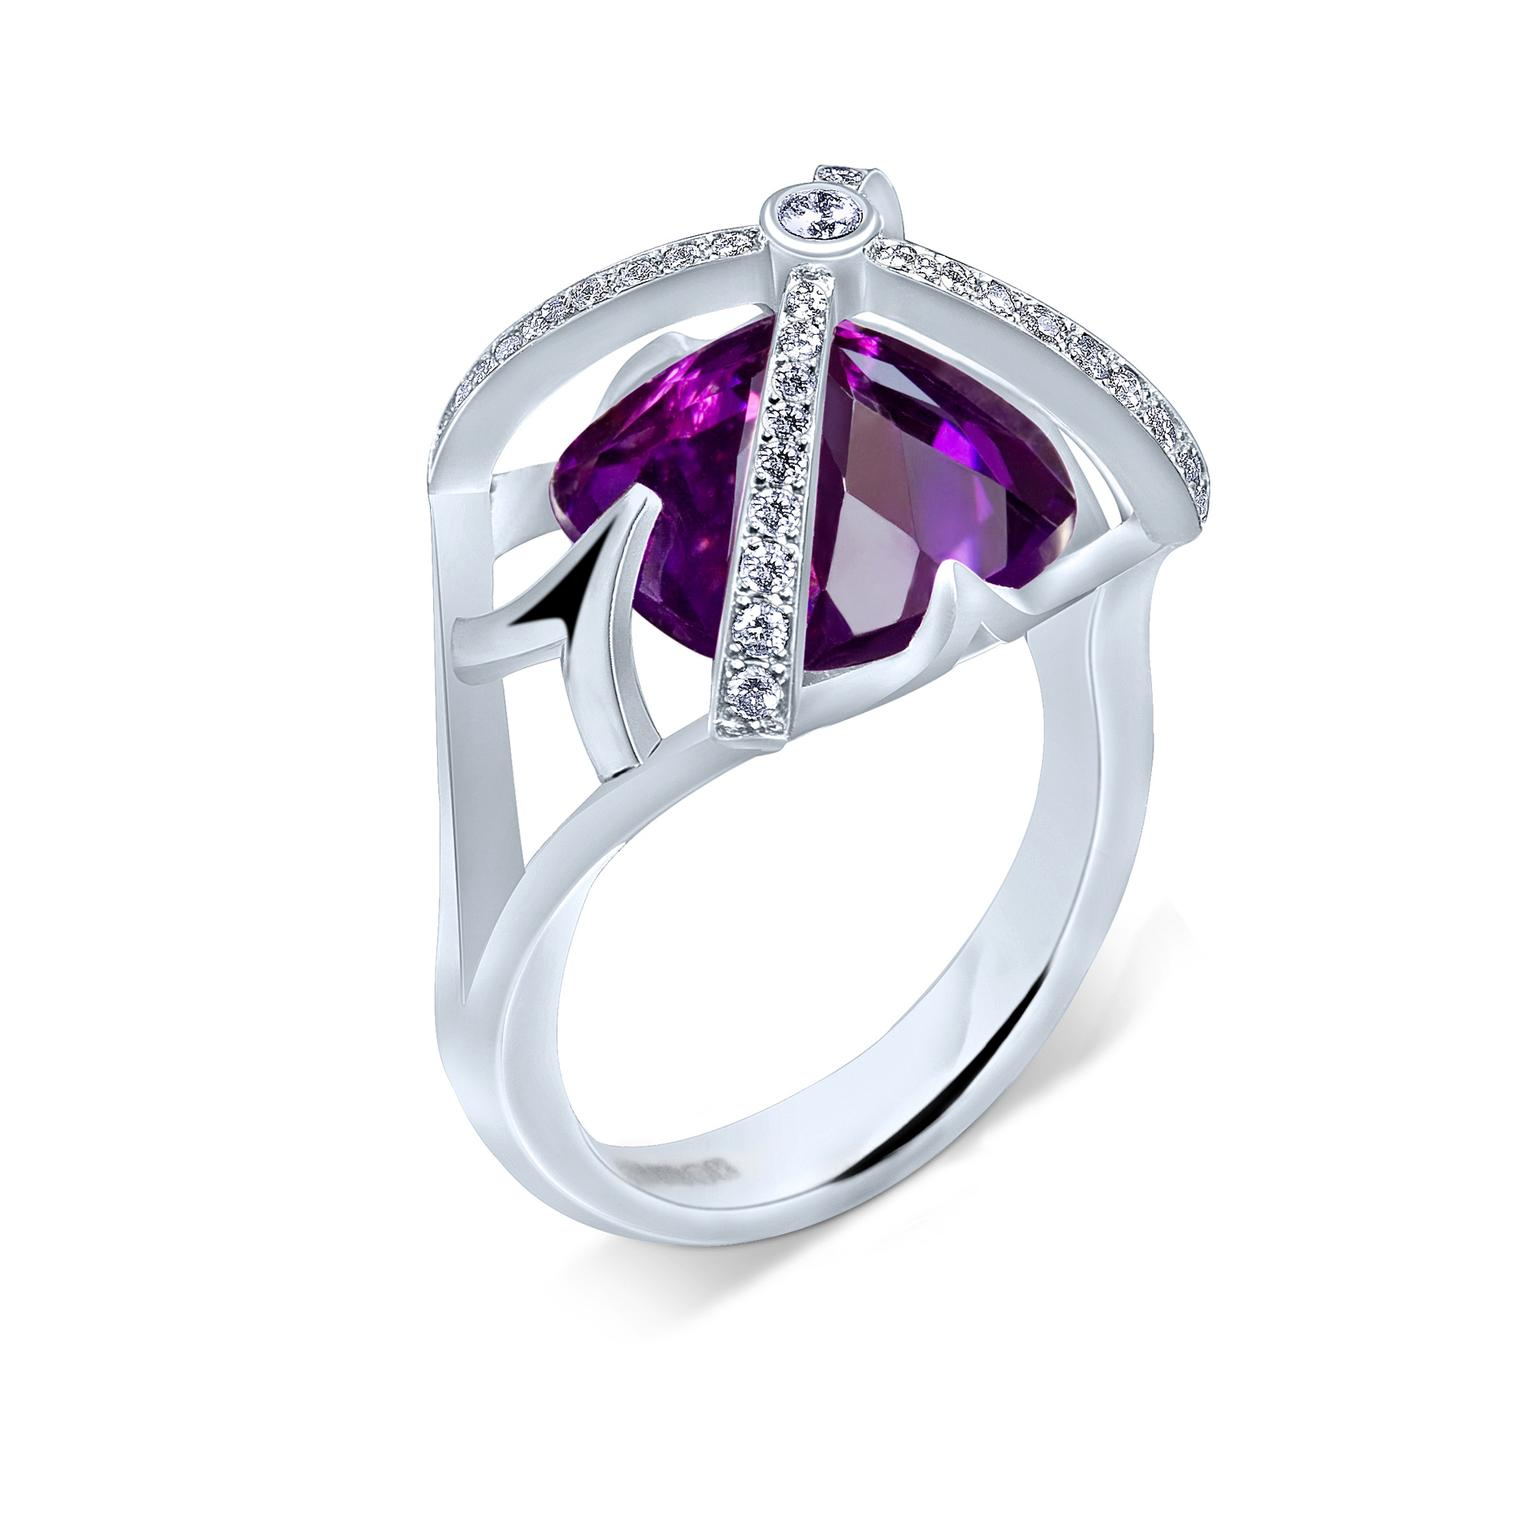 Alexander Davis Dark Romance amethyst ring in white gold